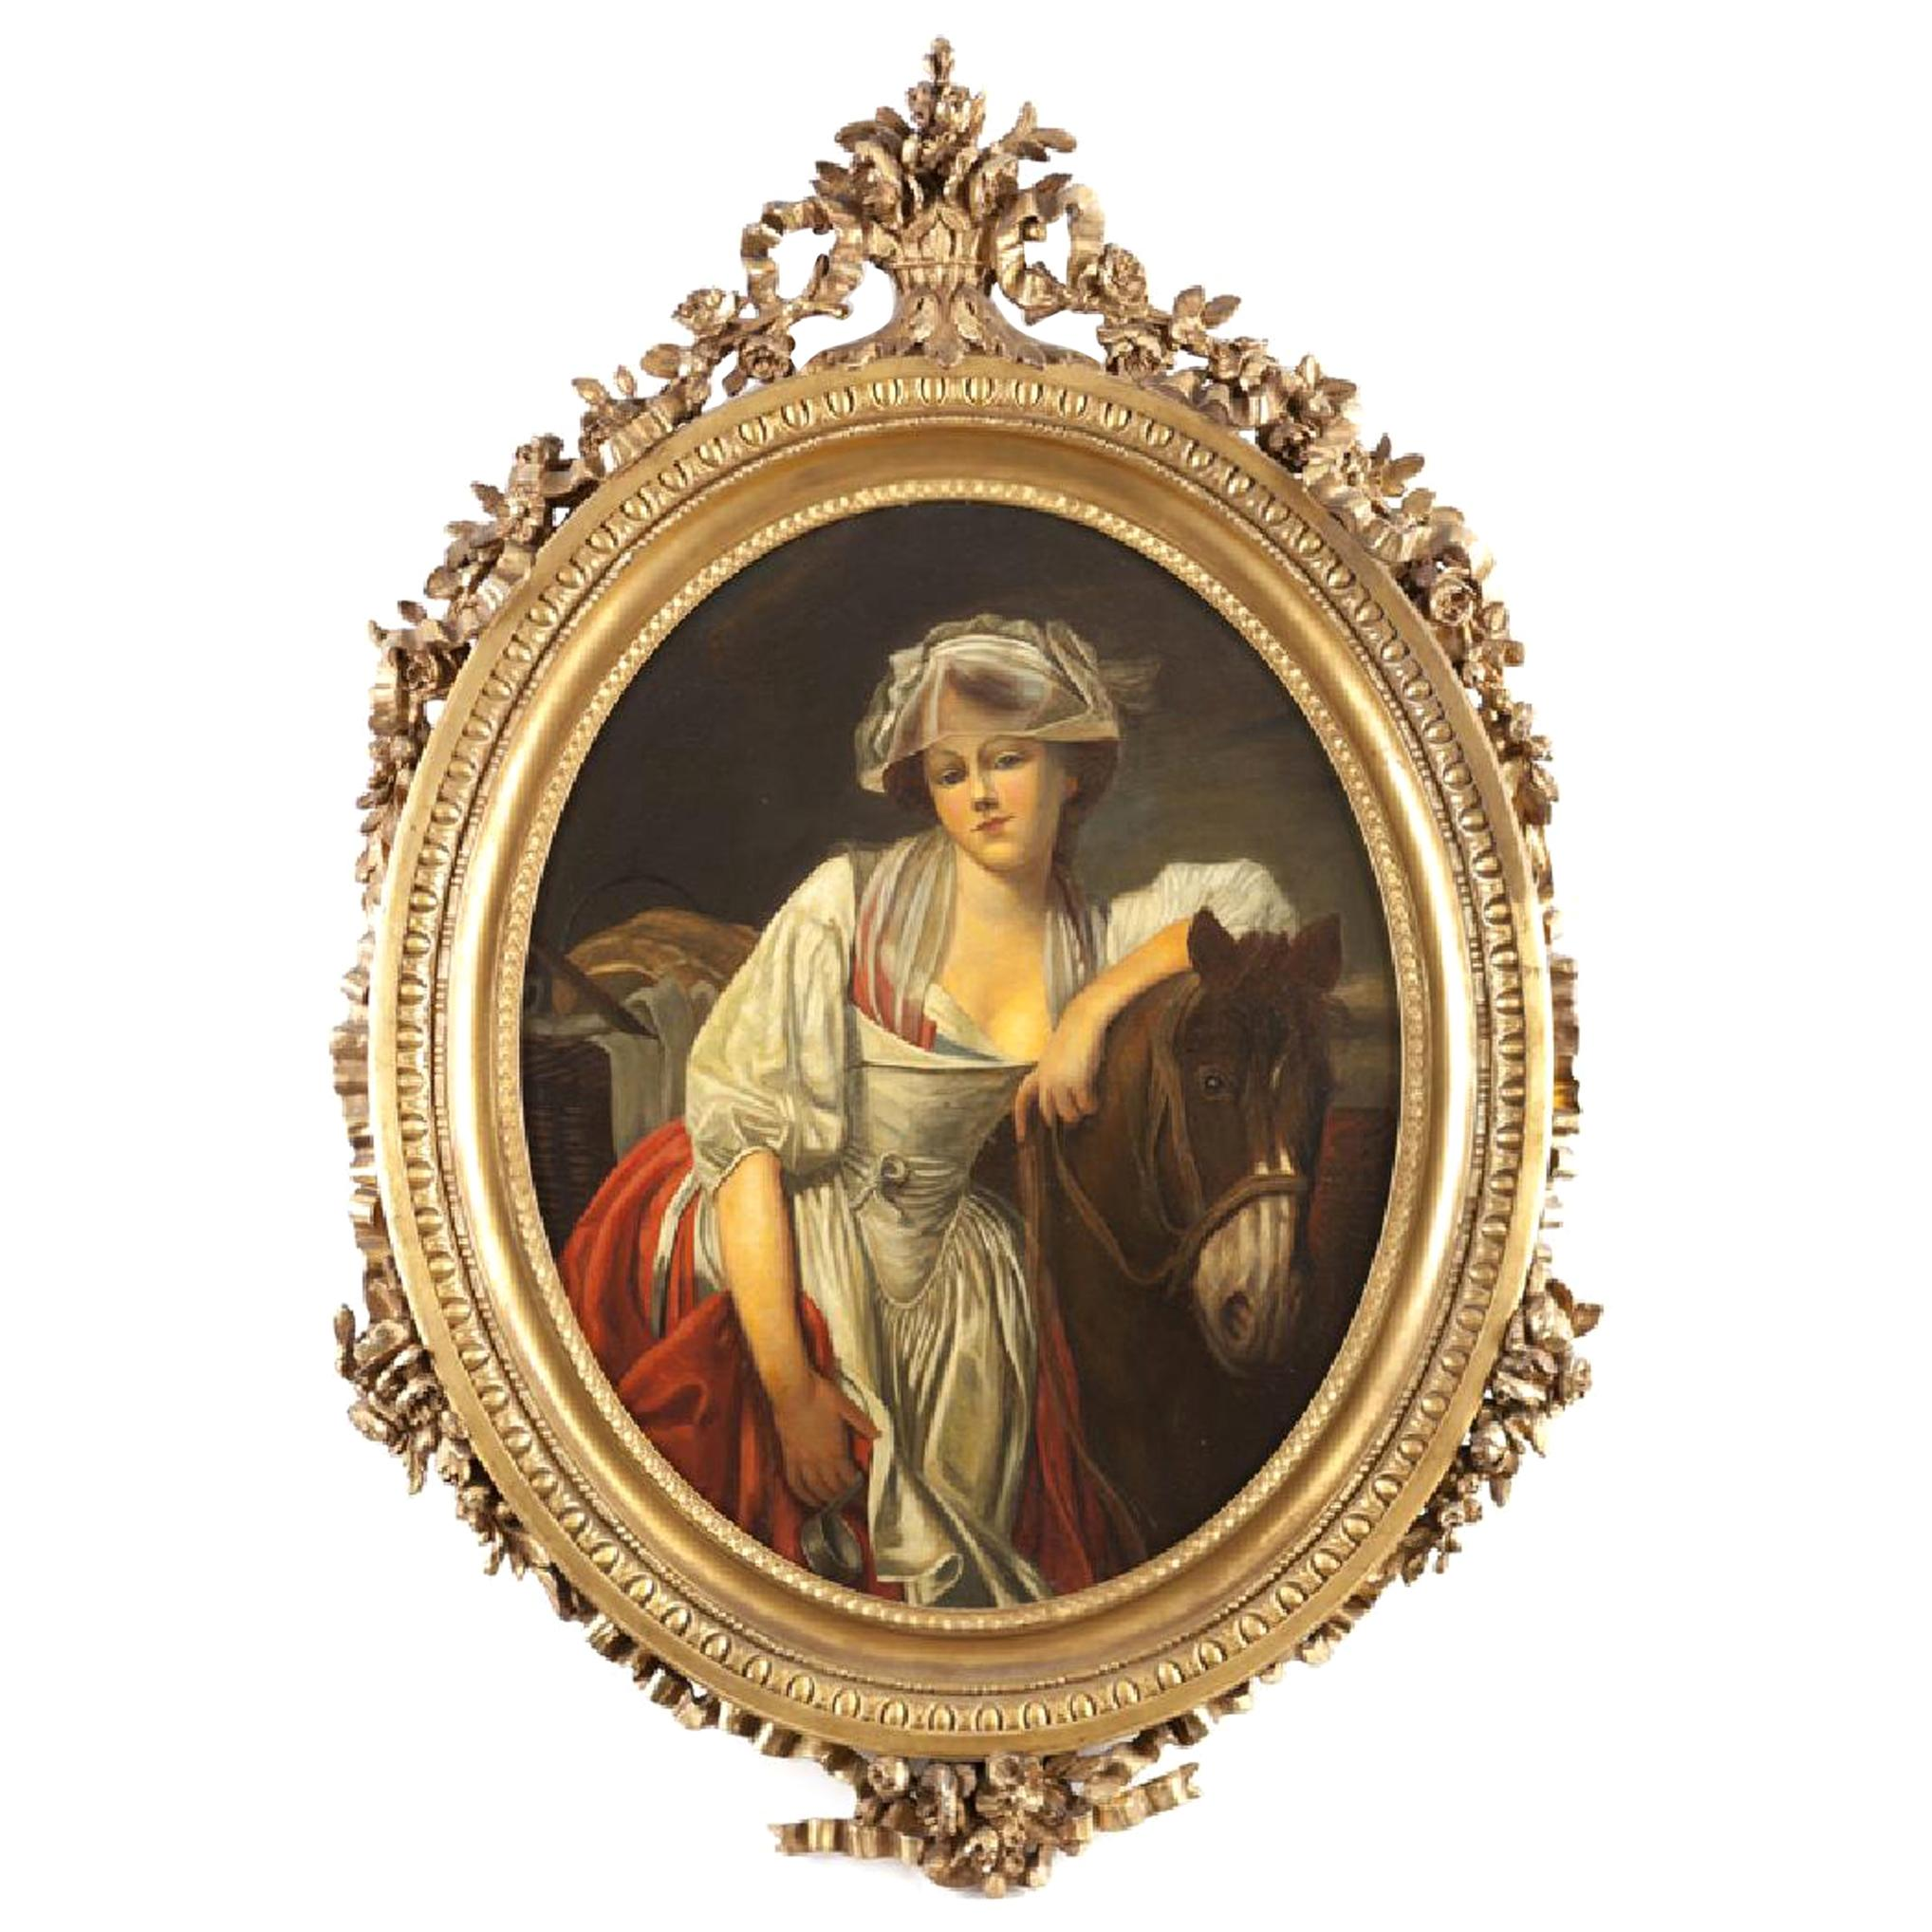 Oval Oil on Canvas Painting of a Woman with Horse, 19th Century